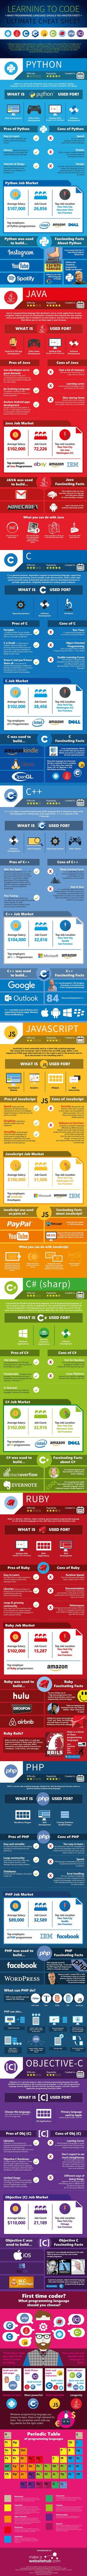 Should You Learn Python, C, or Ruby to Be a Top Coder? (Infographic) | Inc.com: